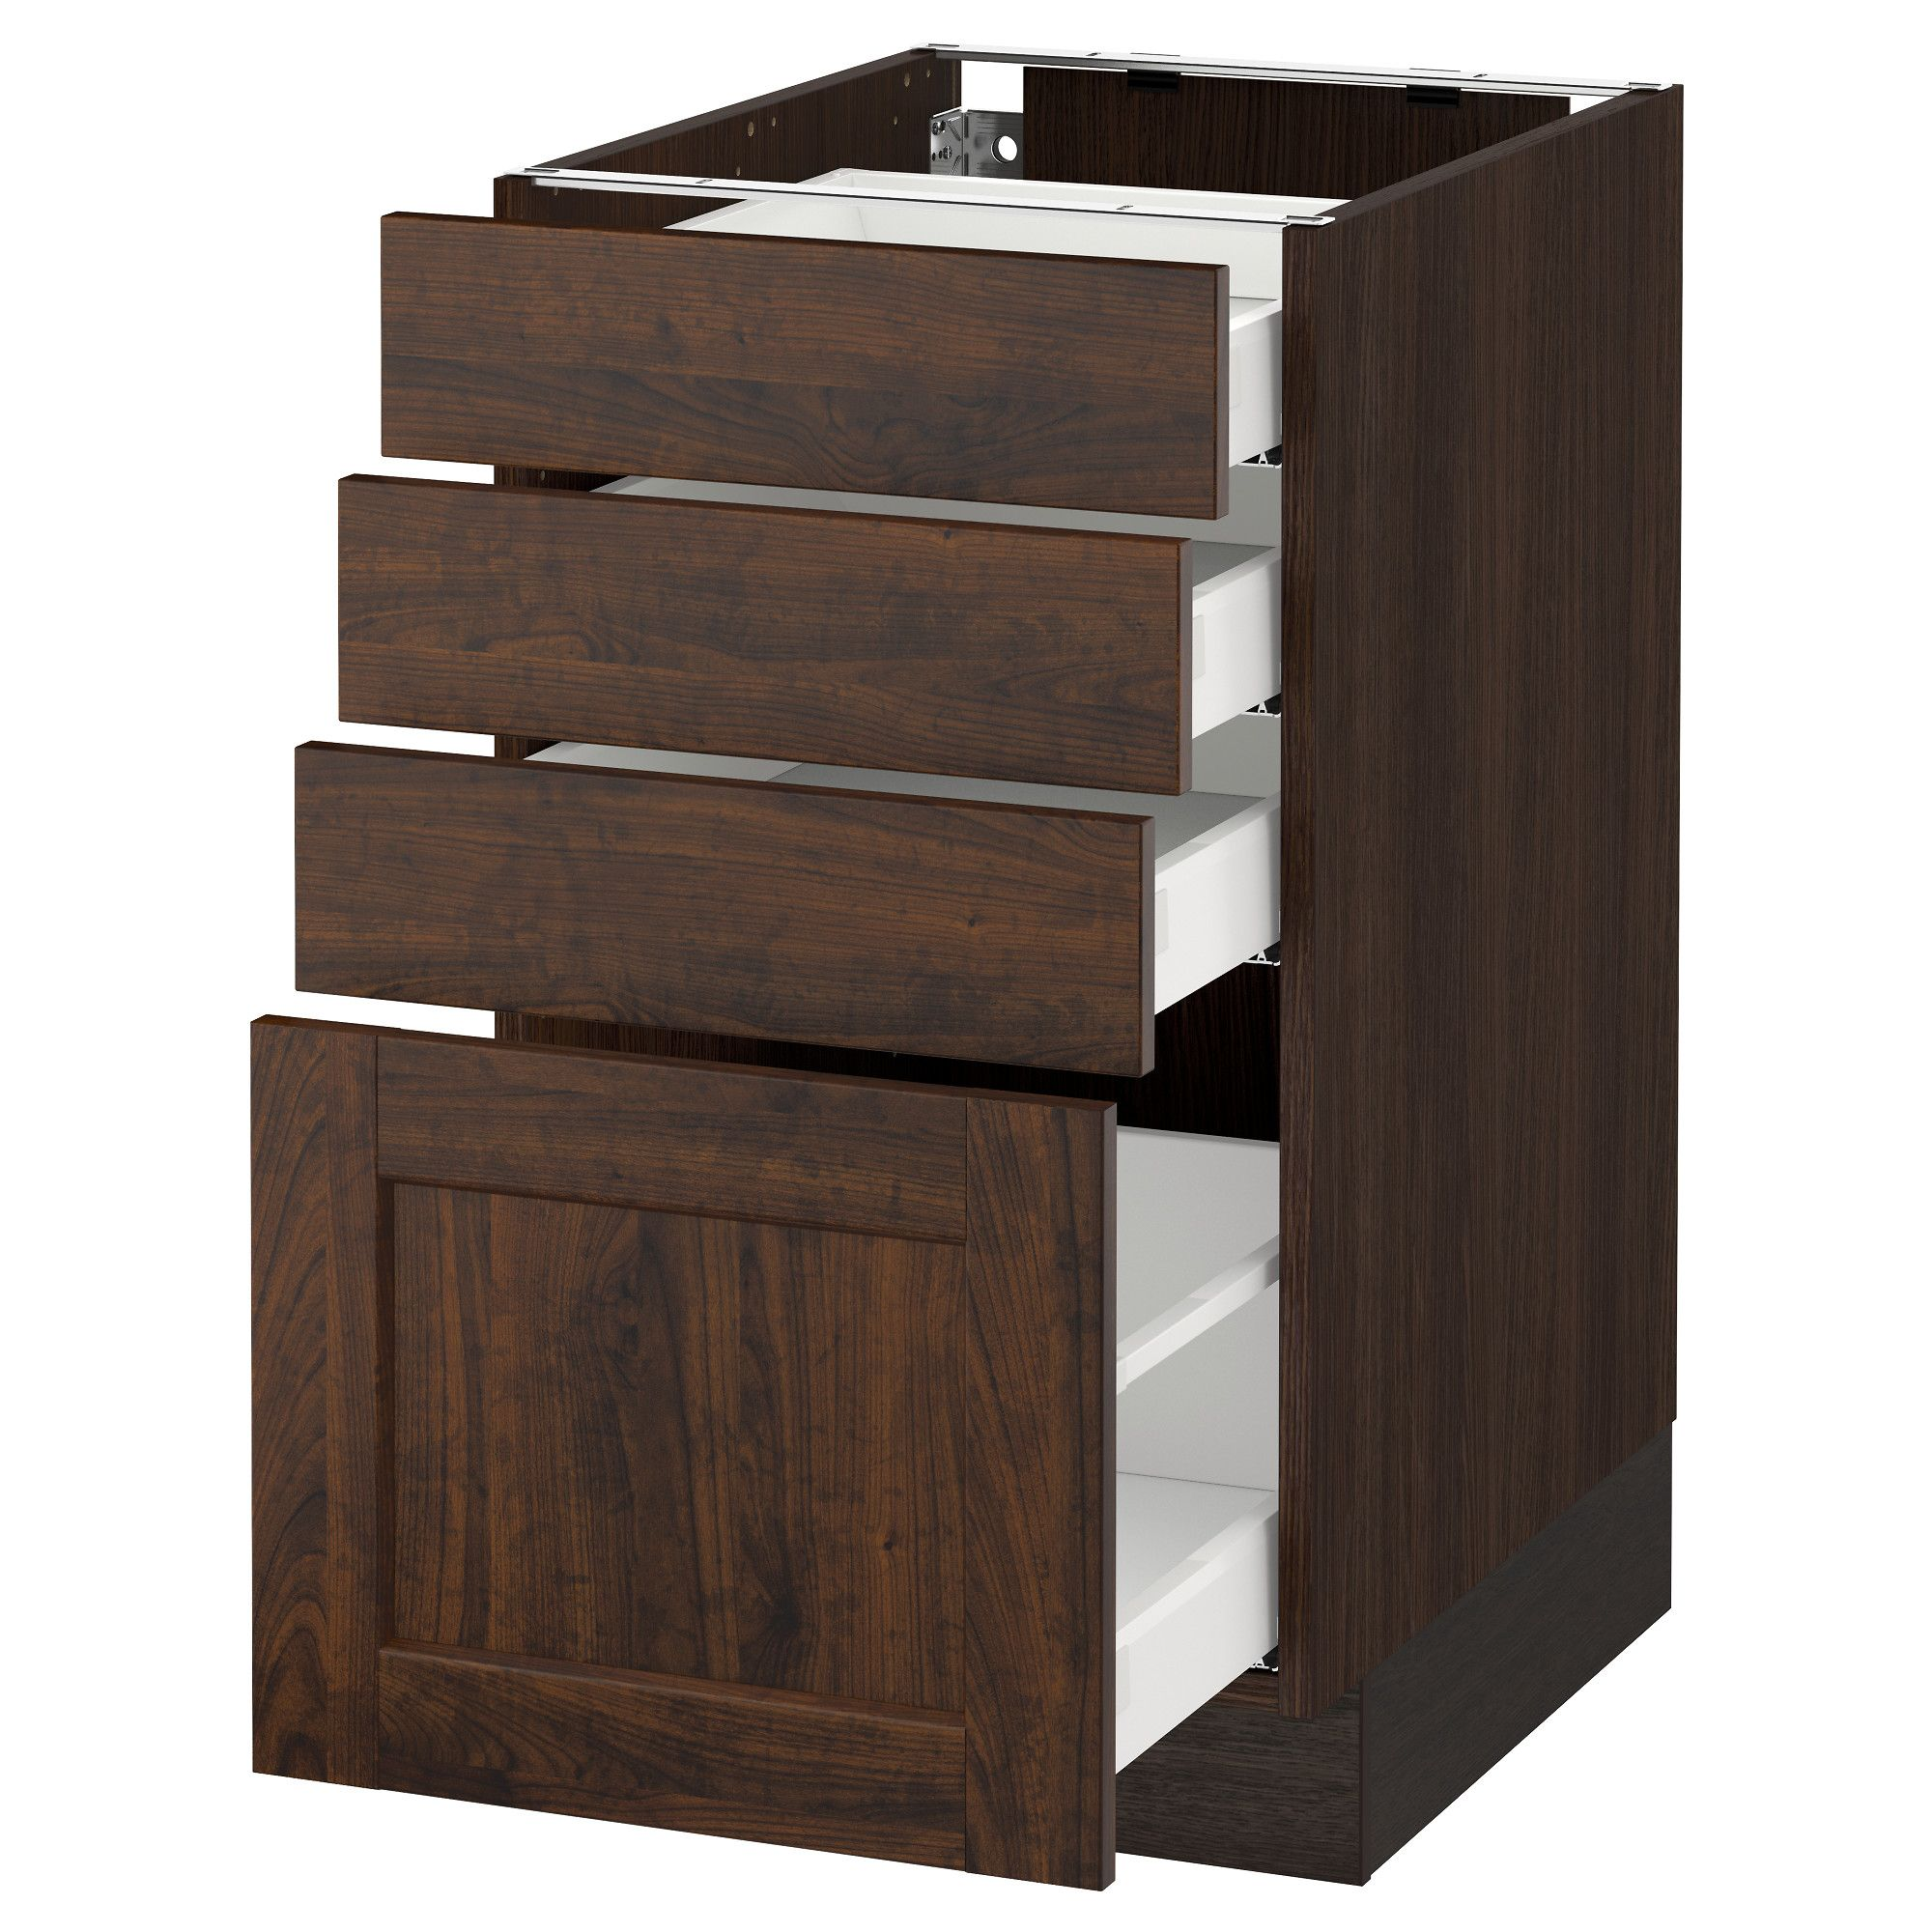 Ikea  Sektion Wood Effect Brown Base Cabinet With 4